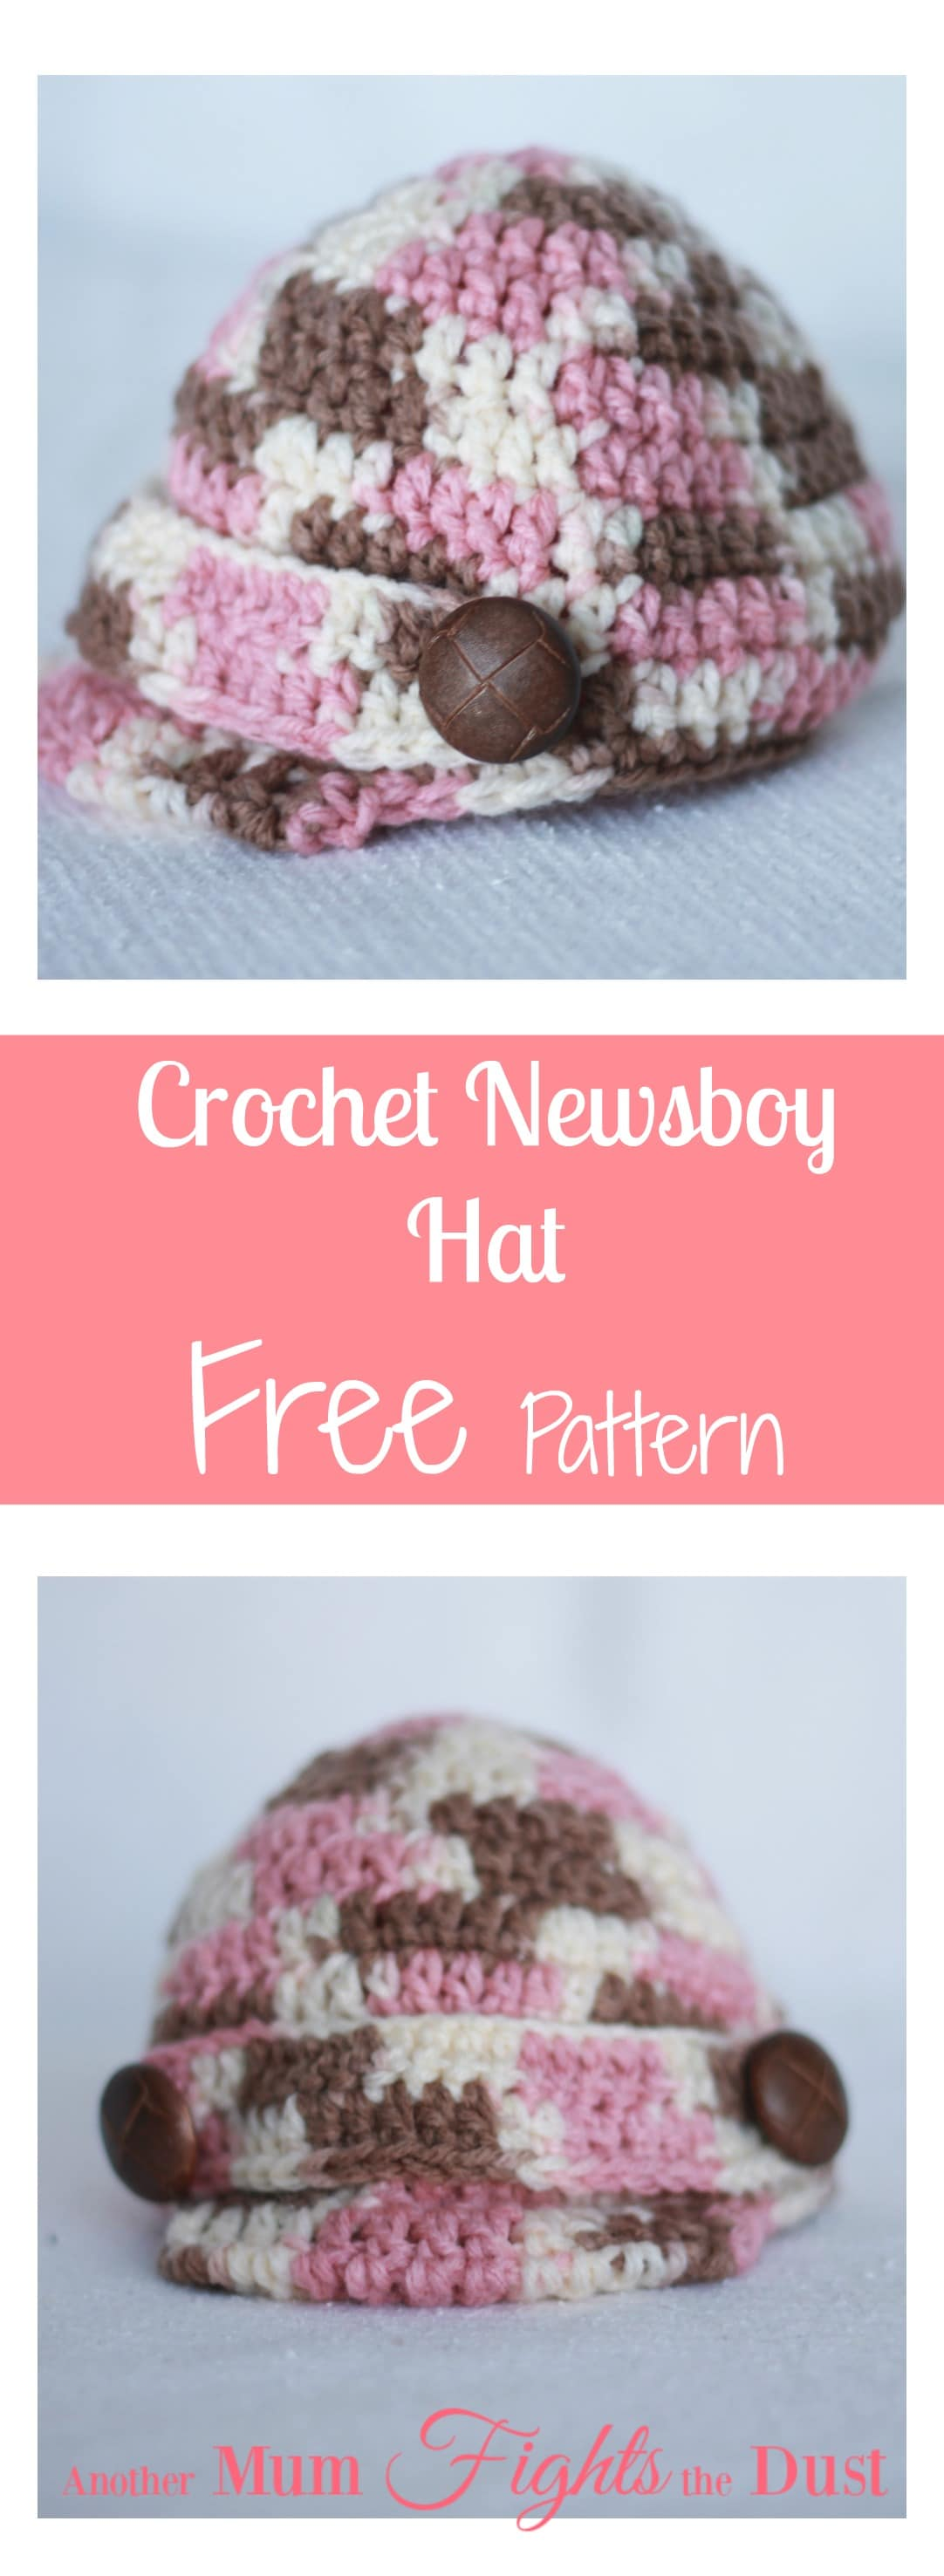 Crochet Baby Newsboy Hat - Another Mum Fights the Dust